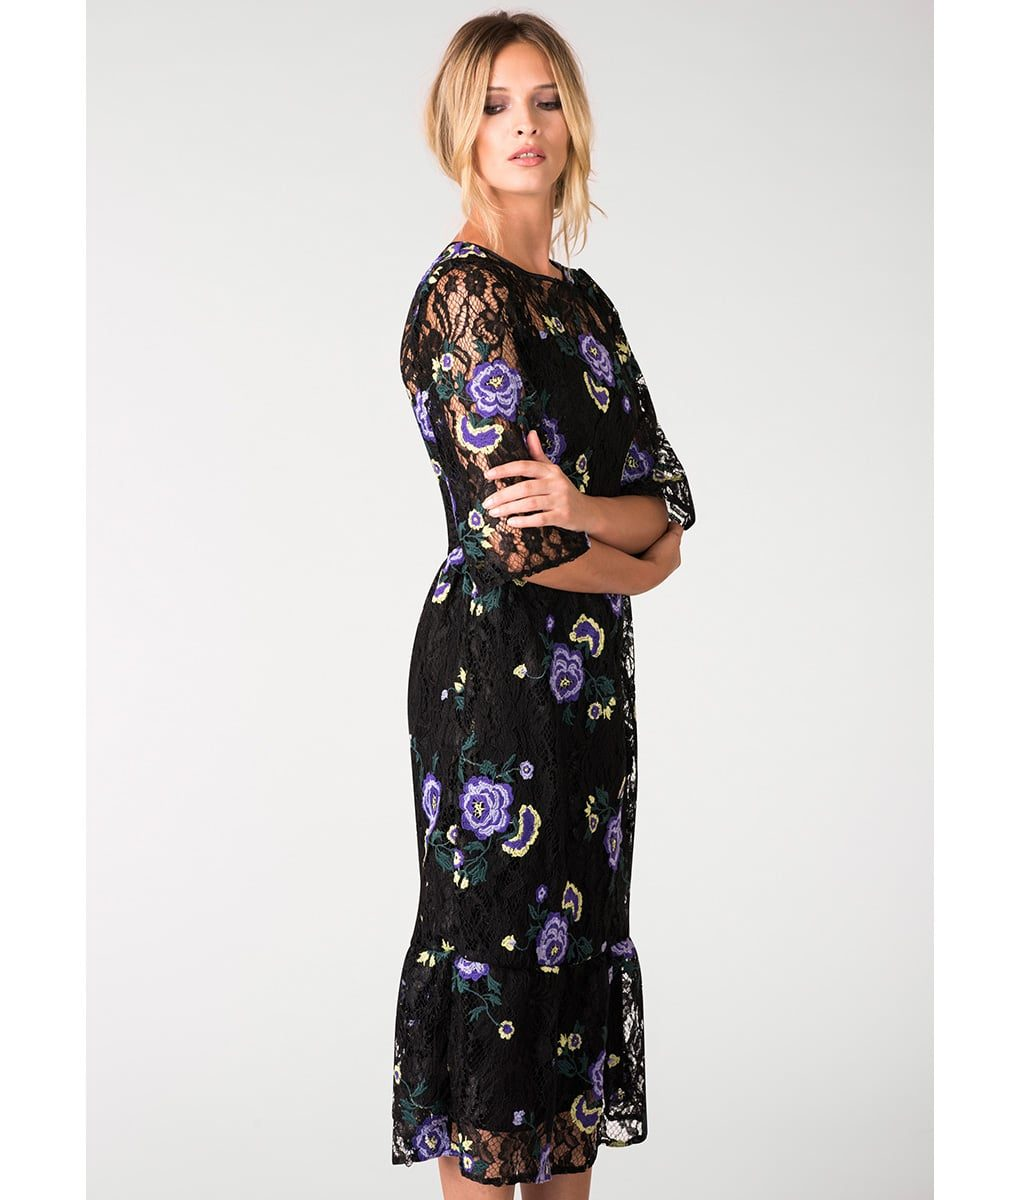 Closet London Floral Black Lace Dress Alila